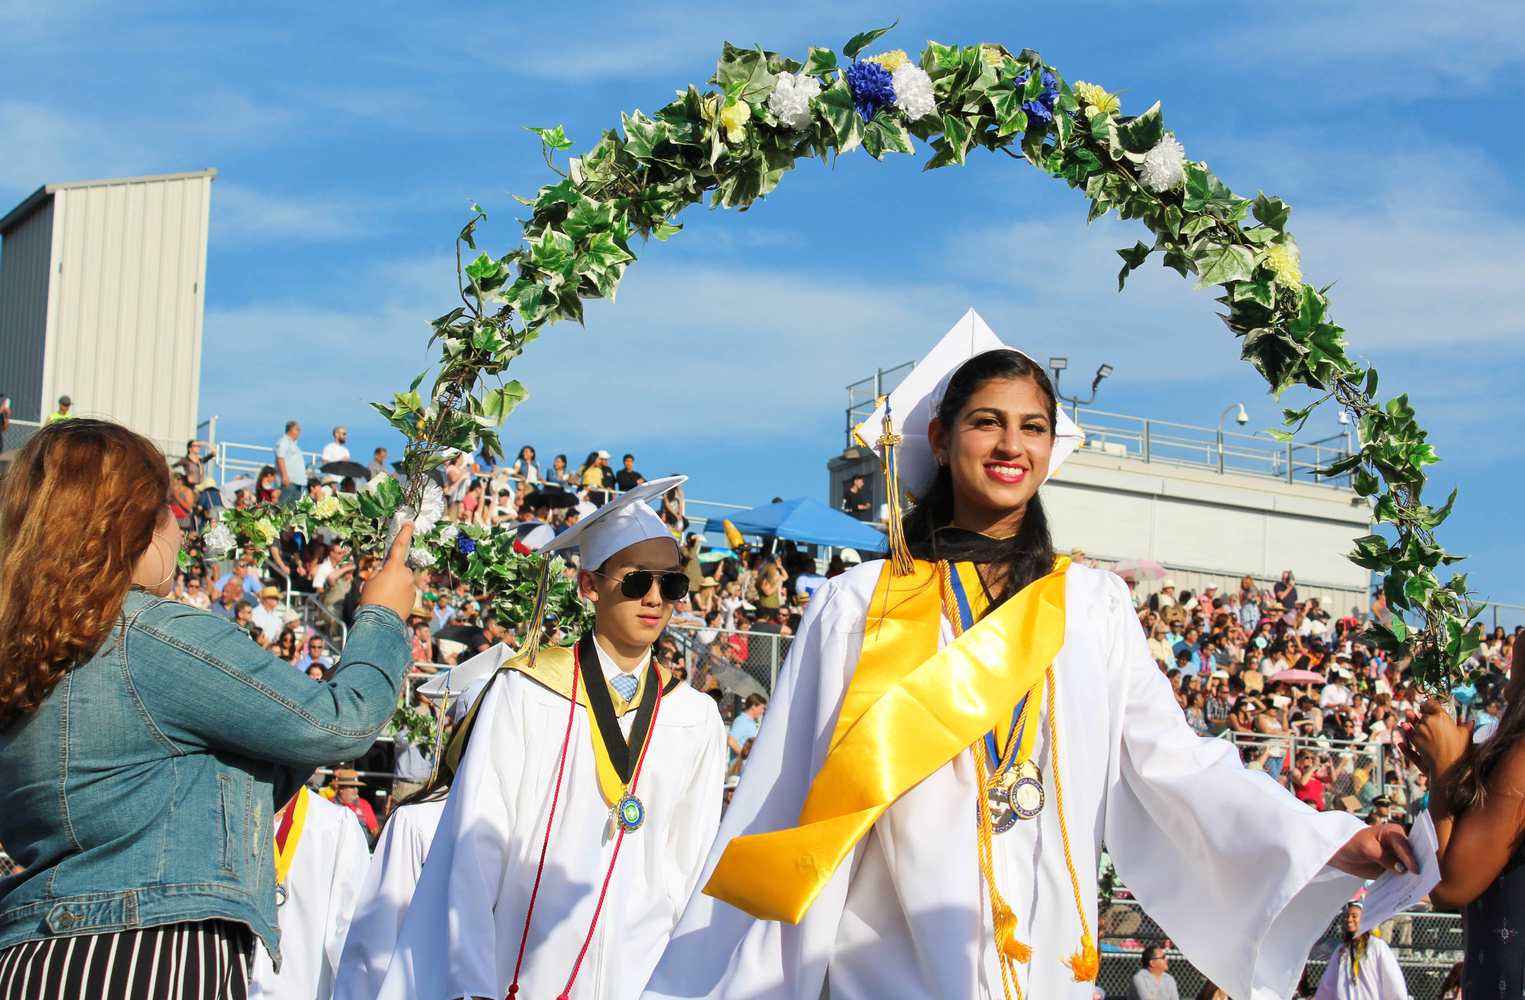 VHS graduate walking through floral arches.